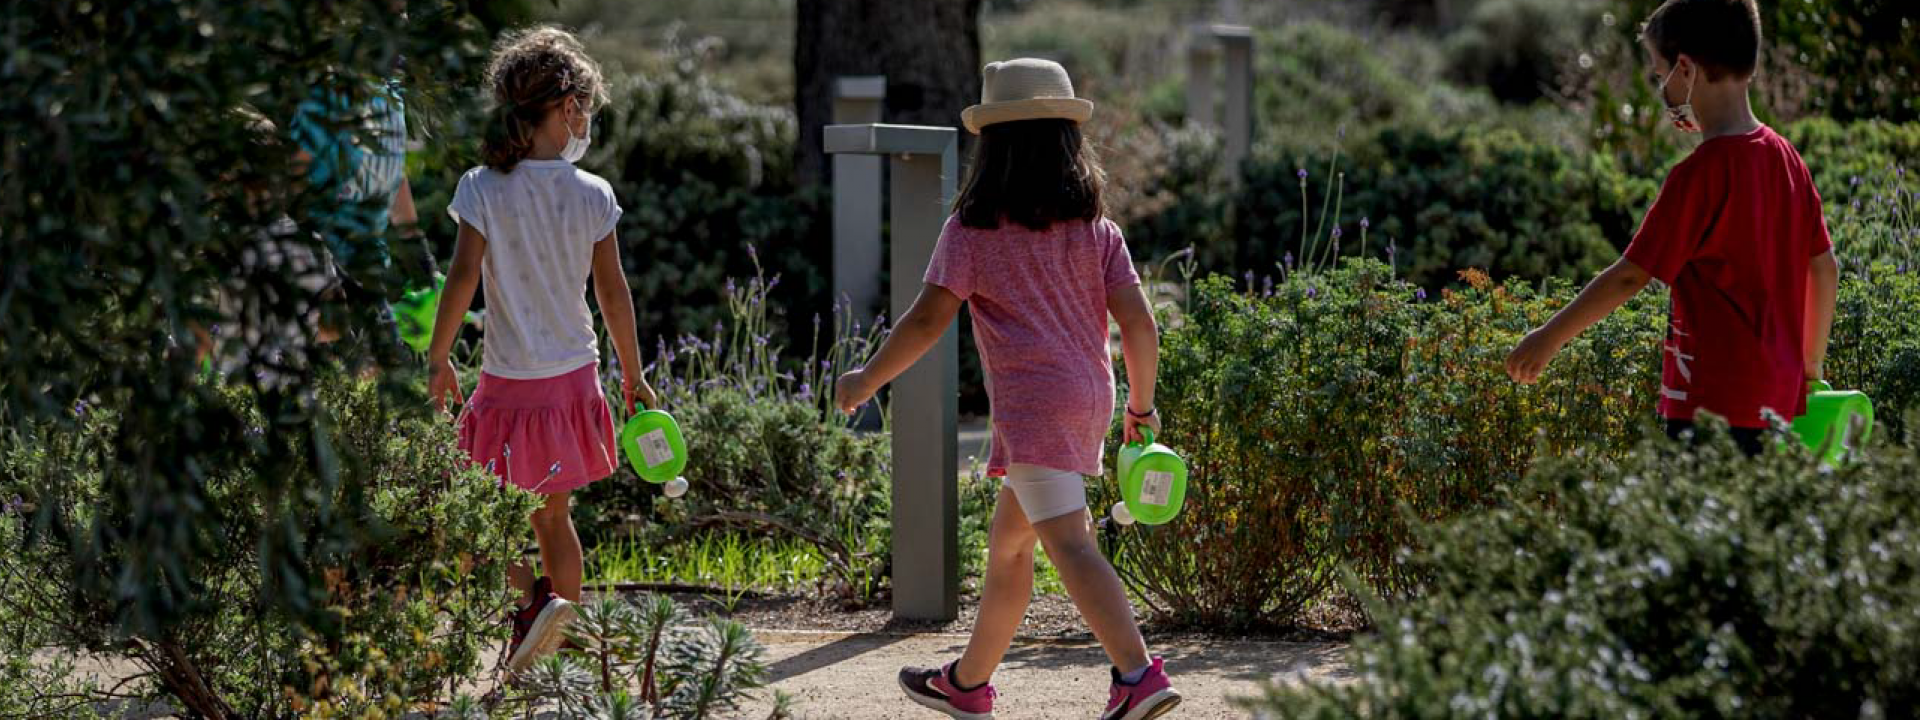 Cancellation: Little Gardeners of the Park: A sustainable garden - Εικόνα